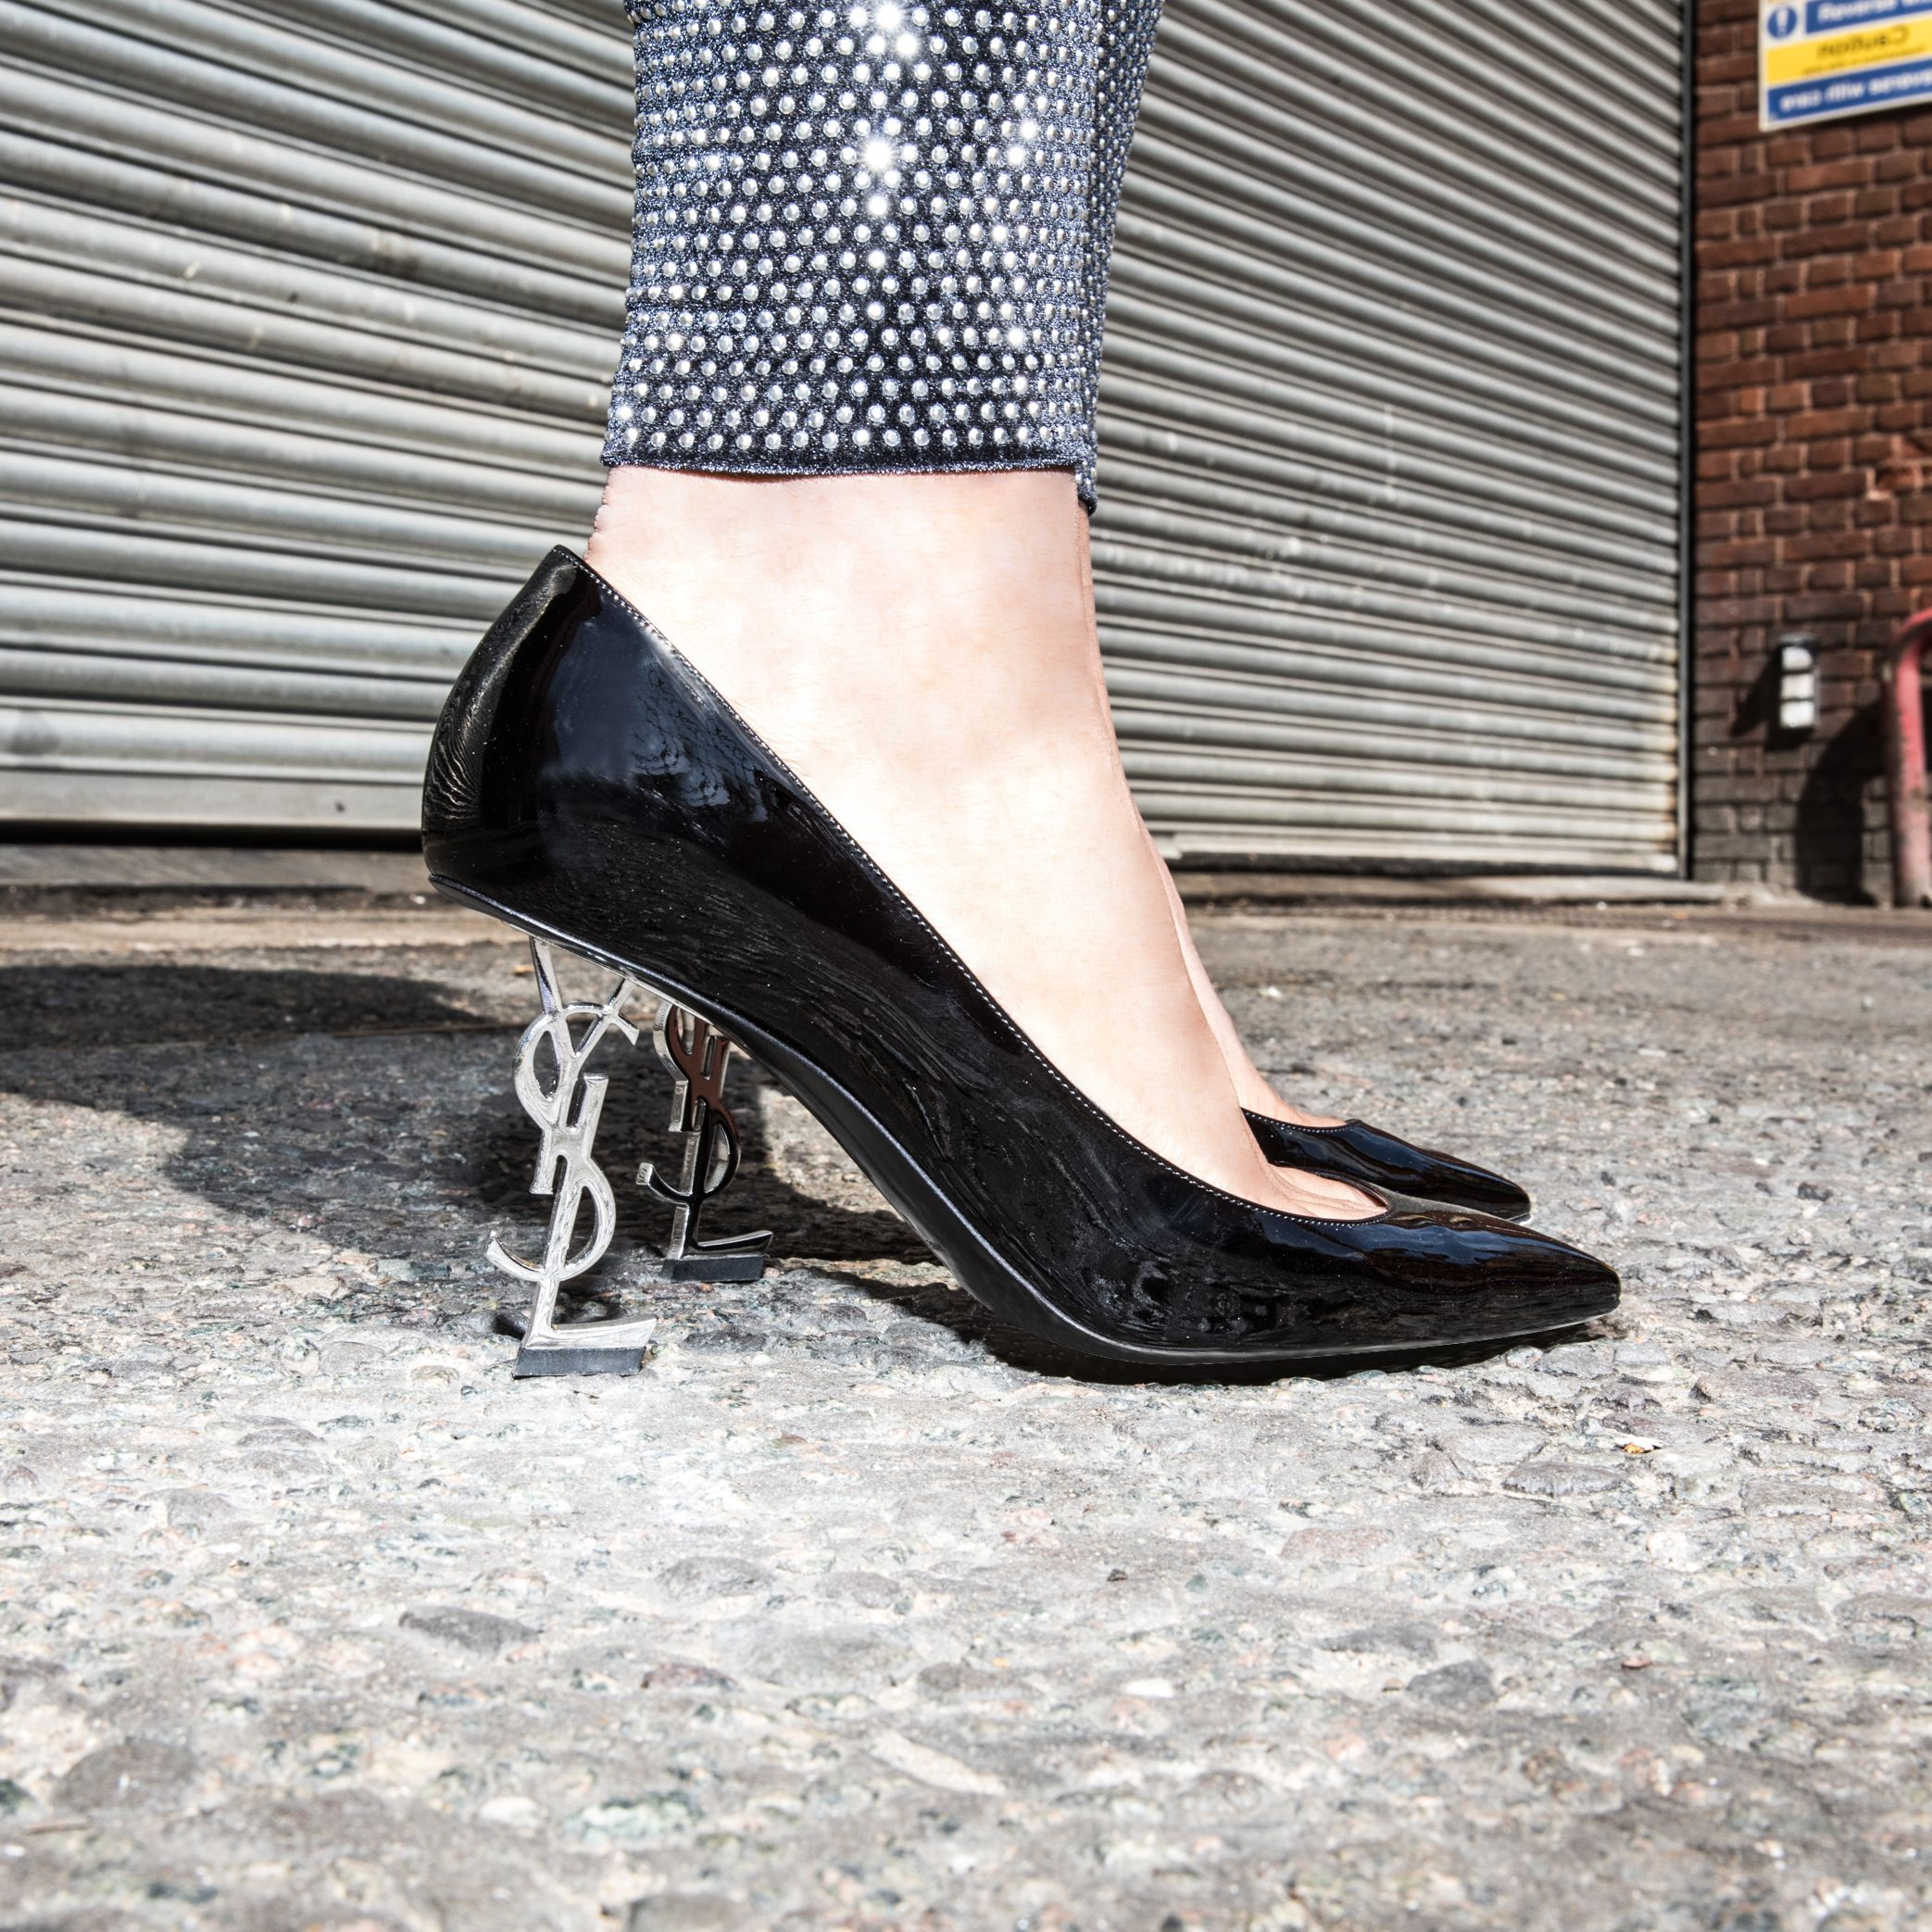 29403e9bb6af Stand out from the heel crowd with this must-have  ysl pumps⚡ How can you  live without them